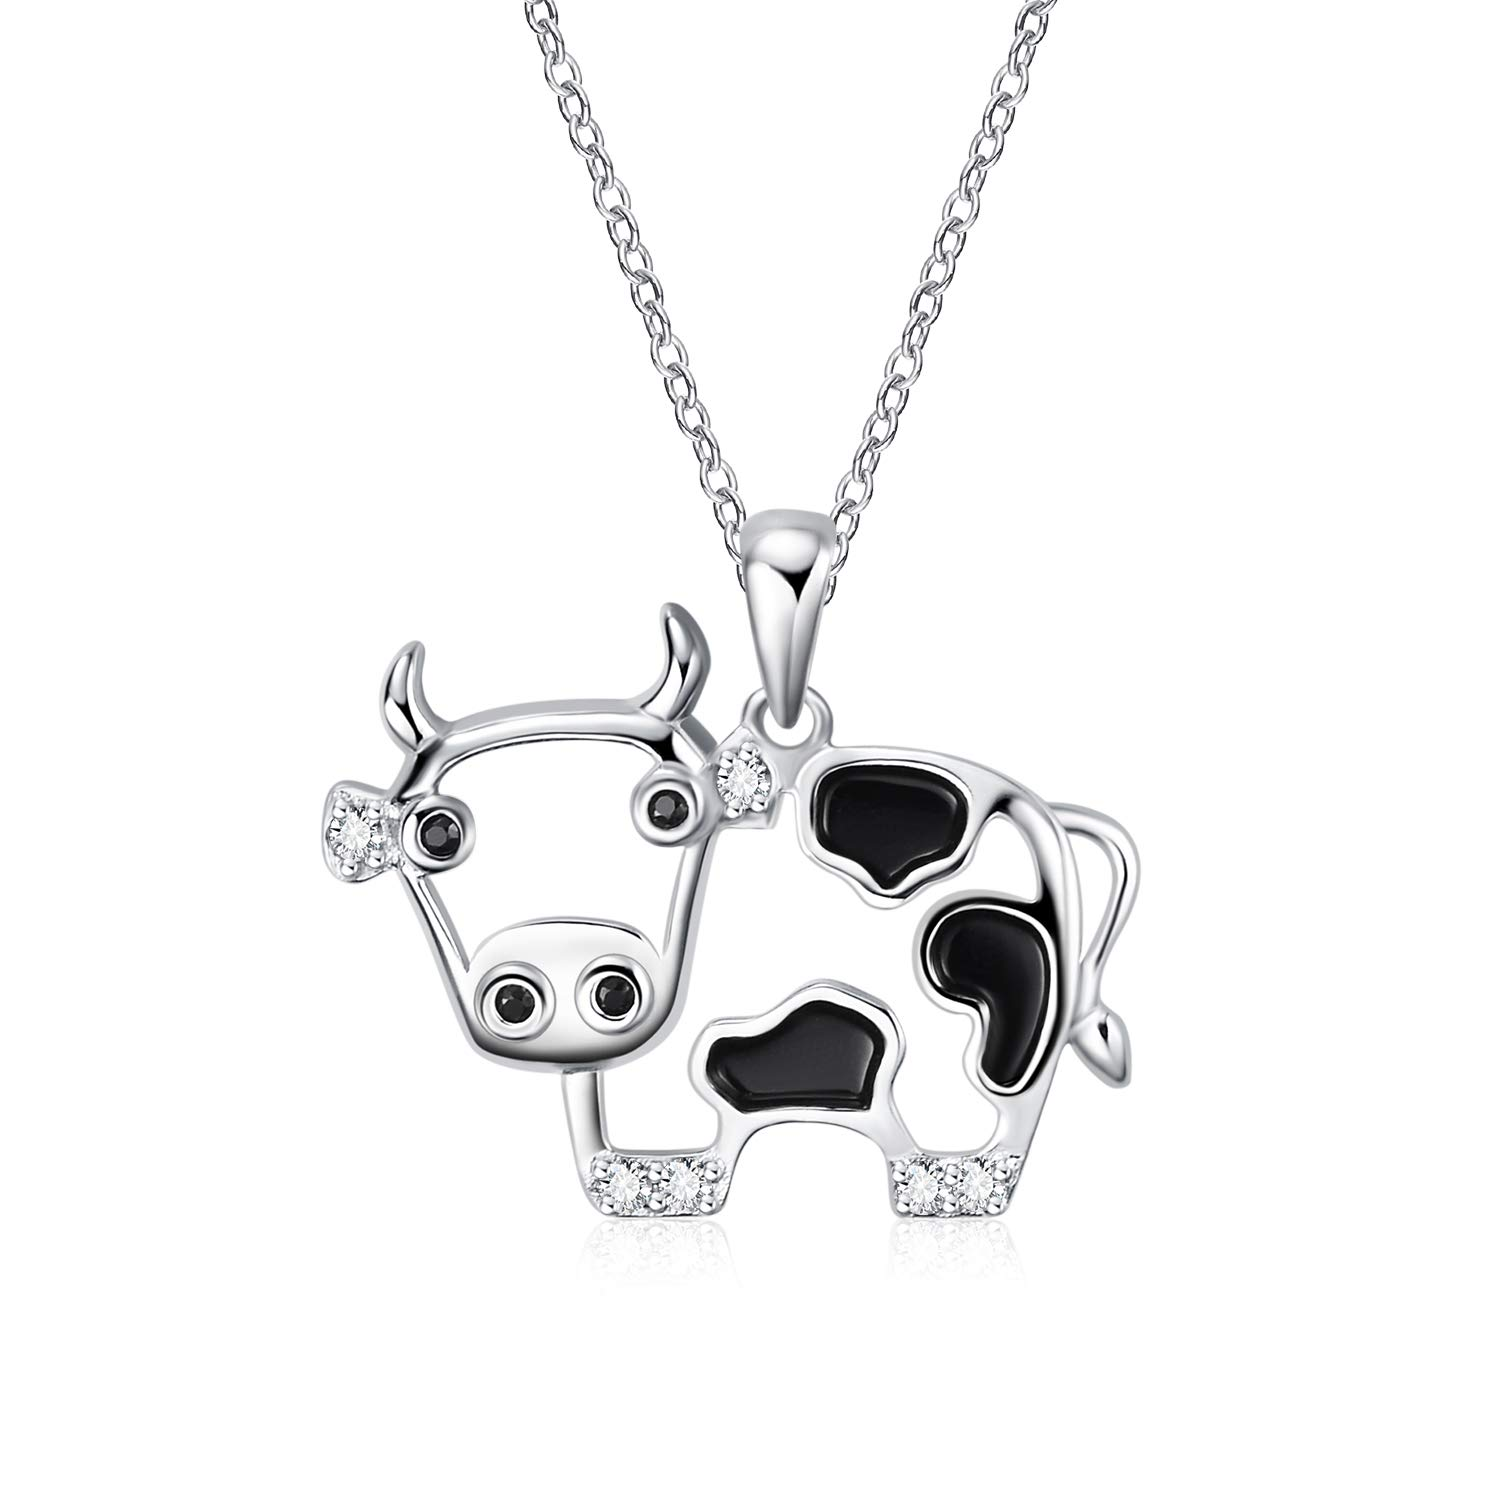 WINNICACA S925 Sterling Silver Cute Animal Necklace Birthday Jewelry Gifts for Pig/Mouse/Cow/Flamingo Lovers